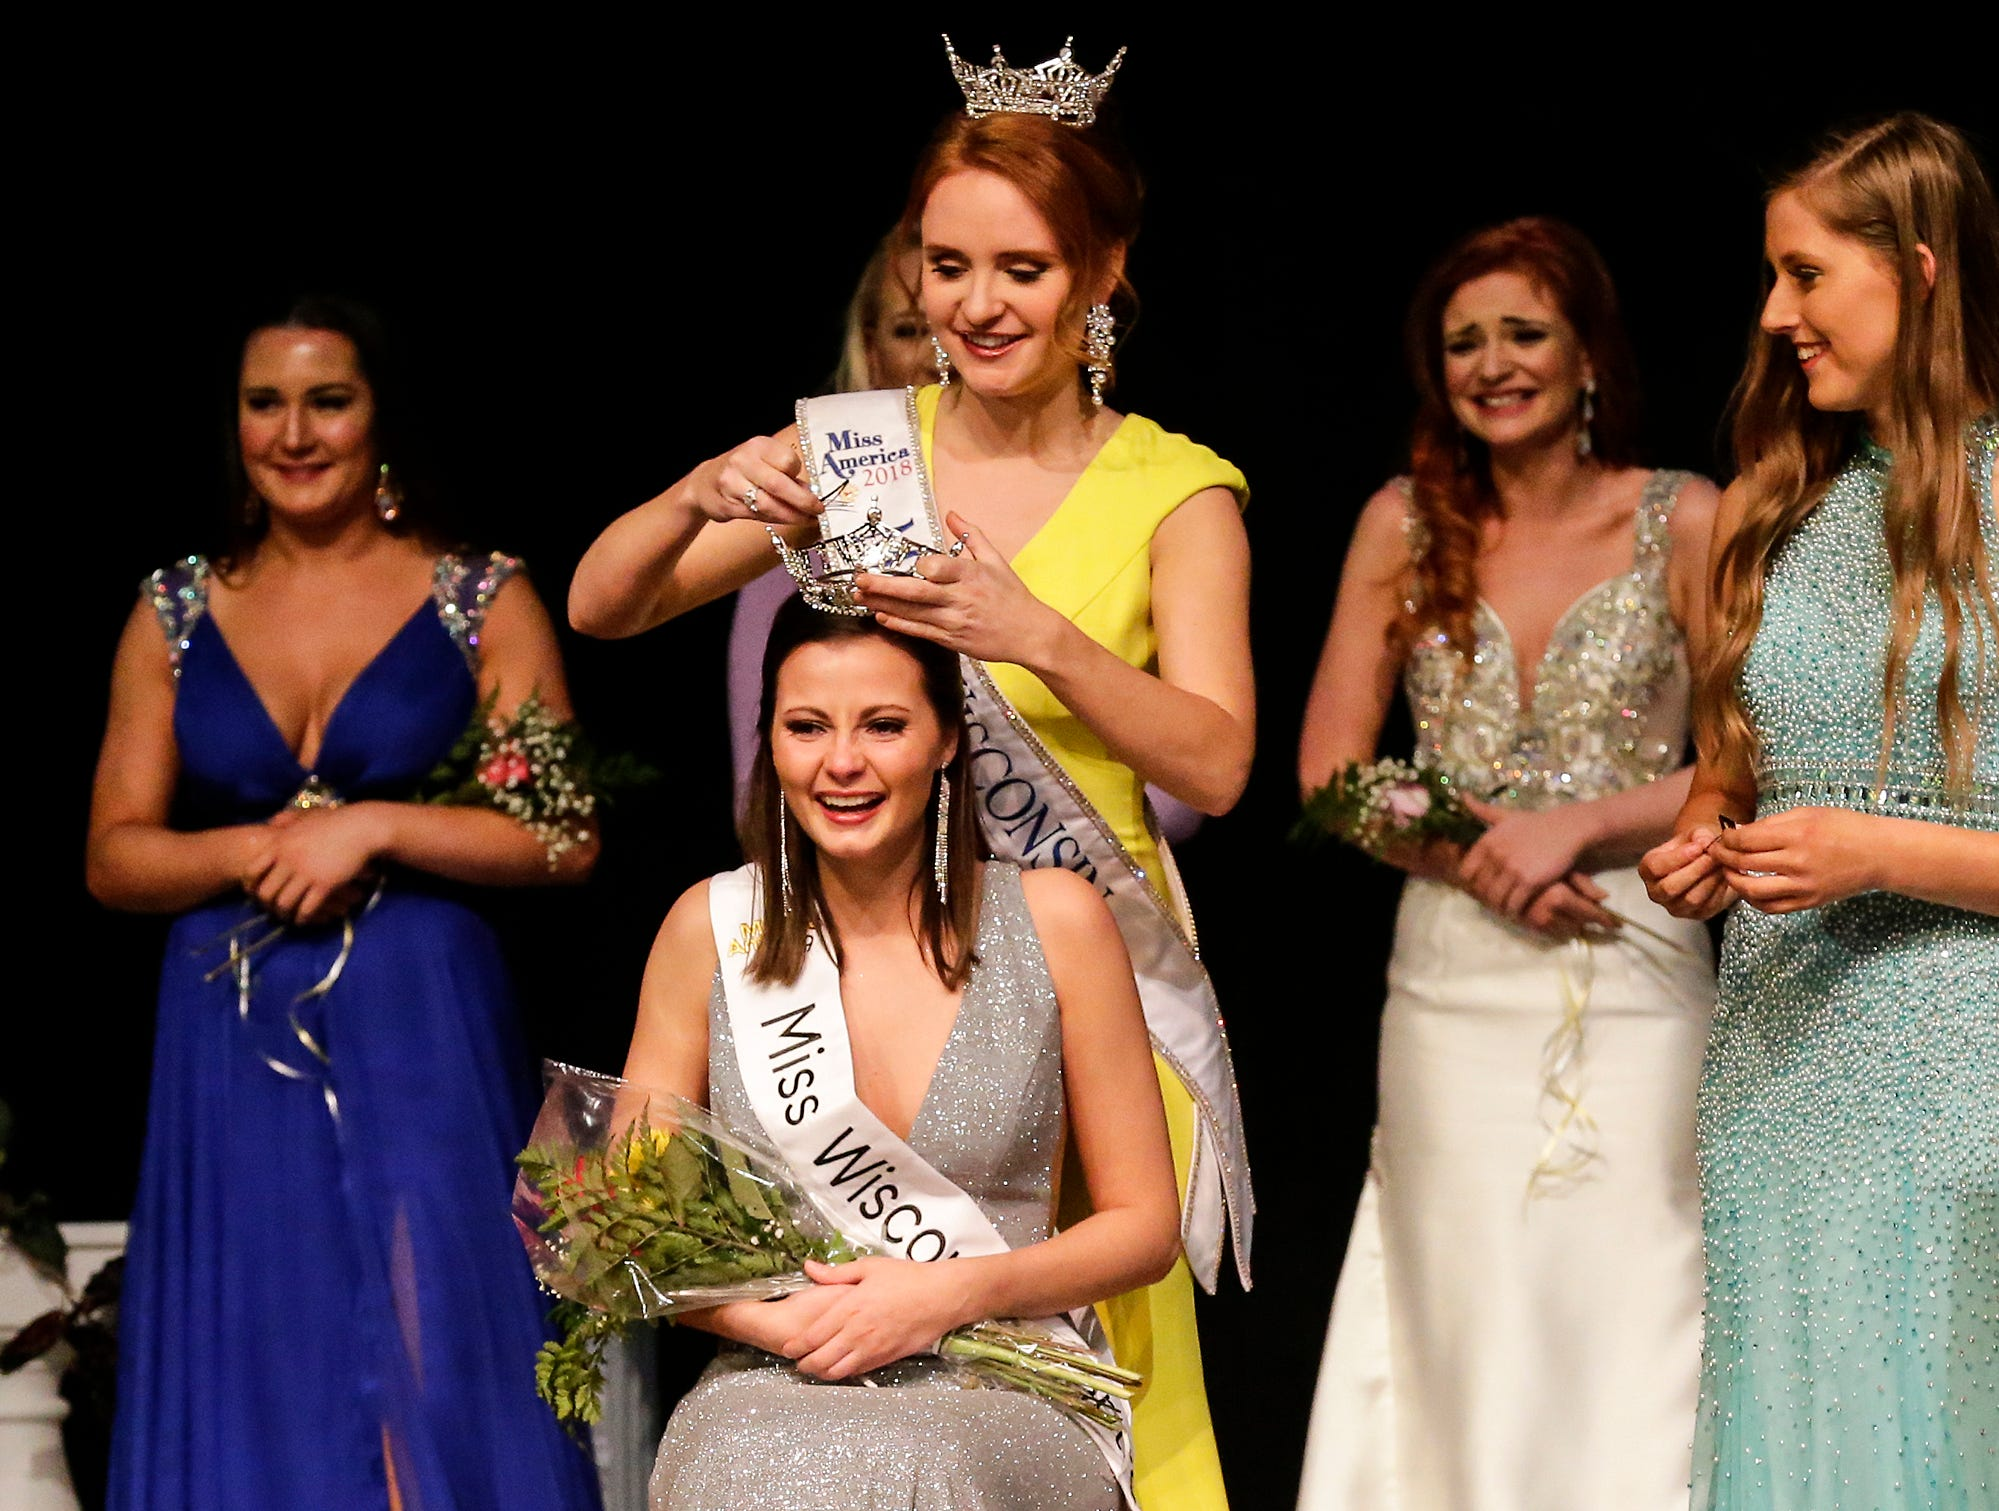 Rachel Coulthurst is crowned Miss Wisconsin Central 2019 by 2018's Miss Wisconsin Tianna Vanderhei during the Miss Fond du Lac, Miss Wisconsin Central and Miss Fond du Lac's Outstanding Teen 2019 scholarship competitions Saturday, March 9, 2019 at the Goodrich Little Theater in Fond du Lac, Wis. Doug Raflik/USA TODAY NETWORK-Wisconsin